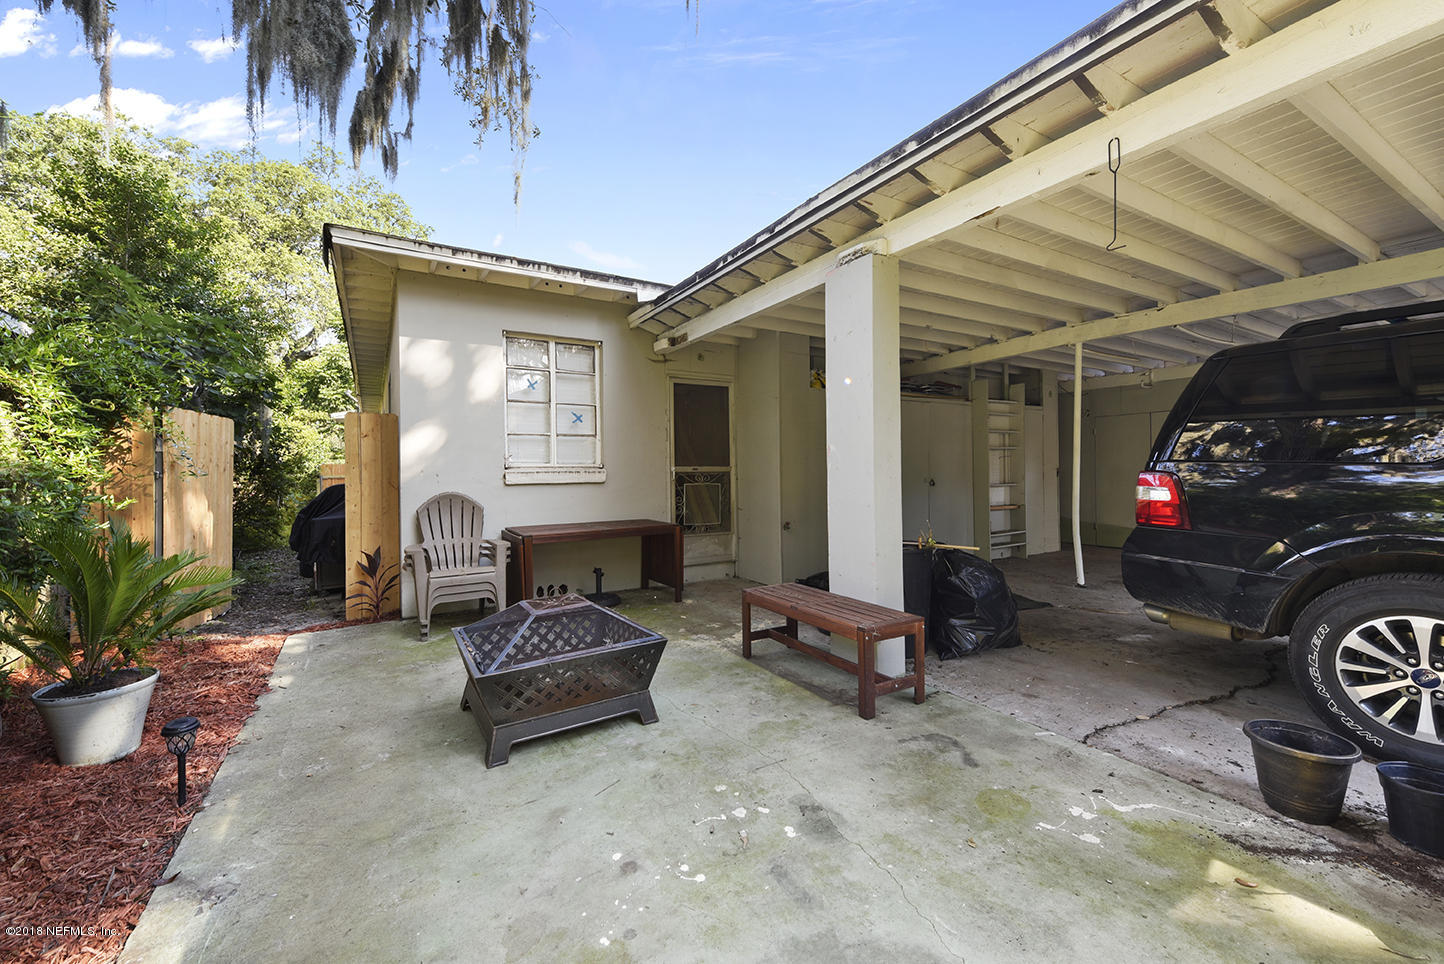 3566 BOONE PARK, JACKSONVILLE, FLORIDA 32205, 4 Bedrooms Bedrooms, ,2 BathroomsBathrooms,Multi family,For sale,BOONE PARK,947090